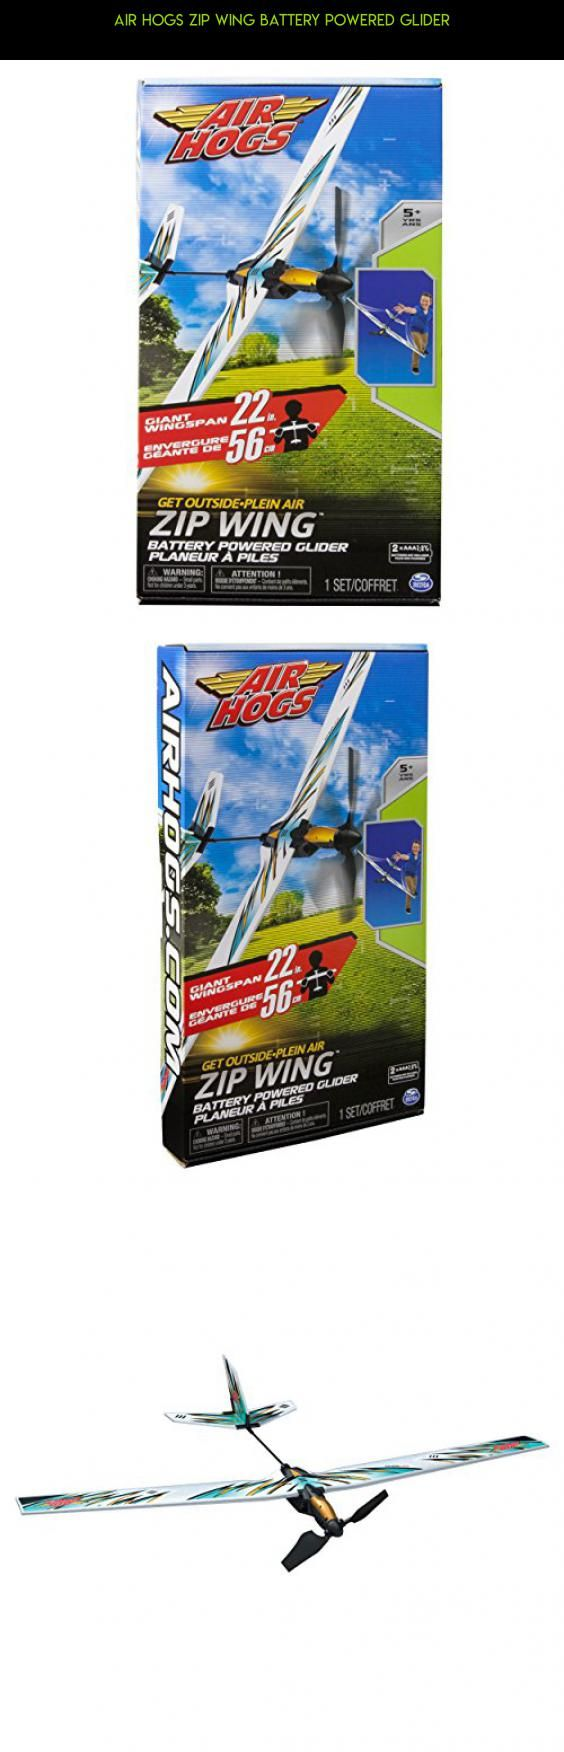 Air Hogs Zip Wing Battery Powered Glider #racing #technology #tech #zip #parts #camera #air #drone #hogs #products #gadgets #shopping #wing #kit #plans #fpv